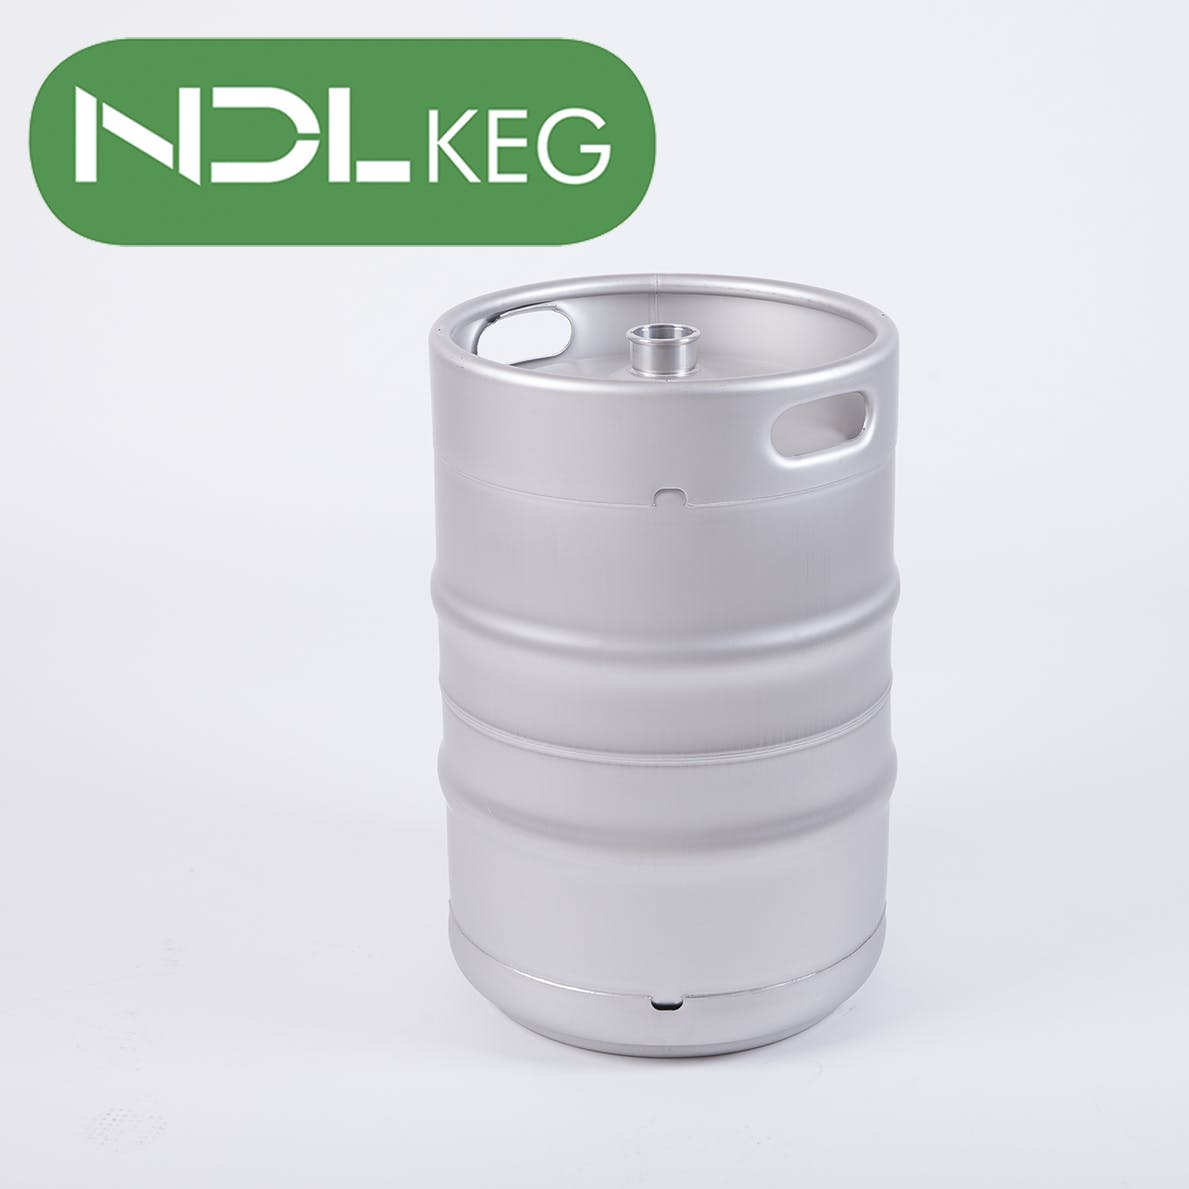 US 1/2 Barrel Stackable Keg sold by NDL Keg